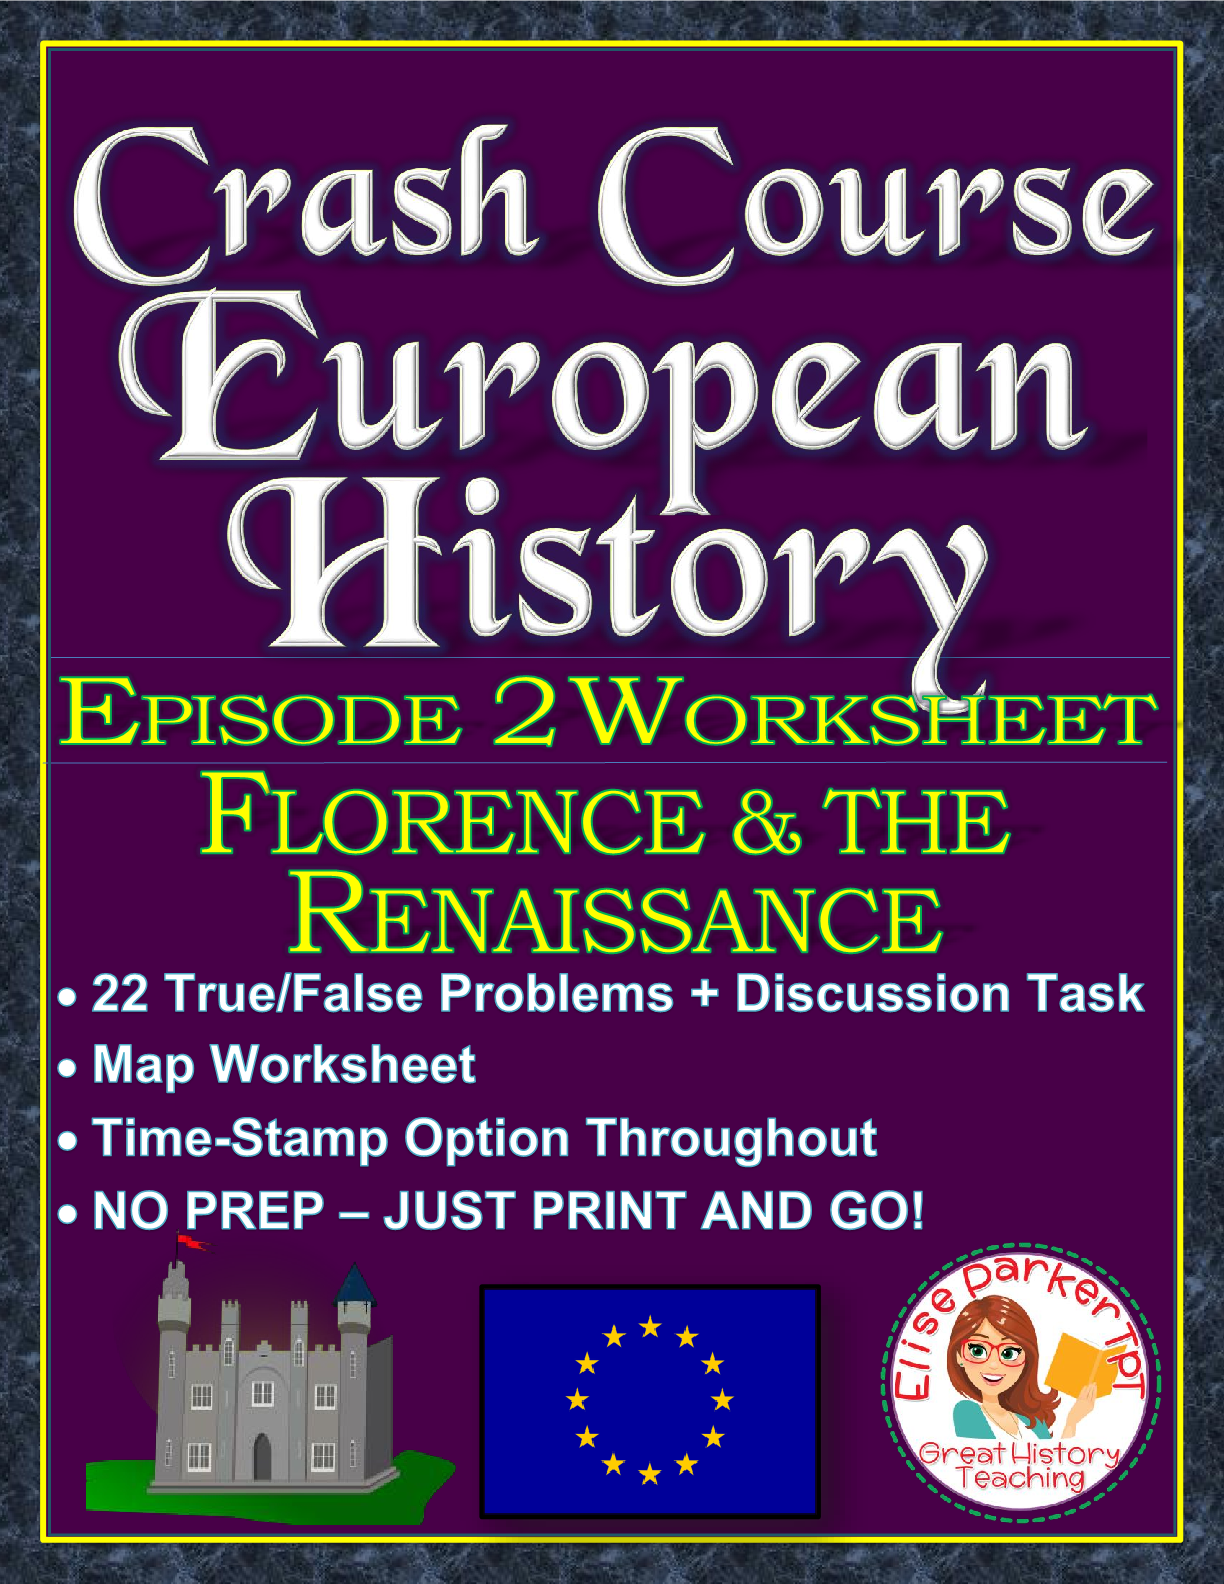 Crash Course European History Episode 2 Worksheet